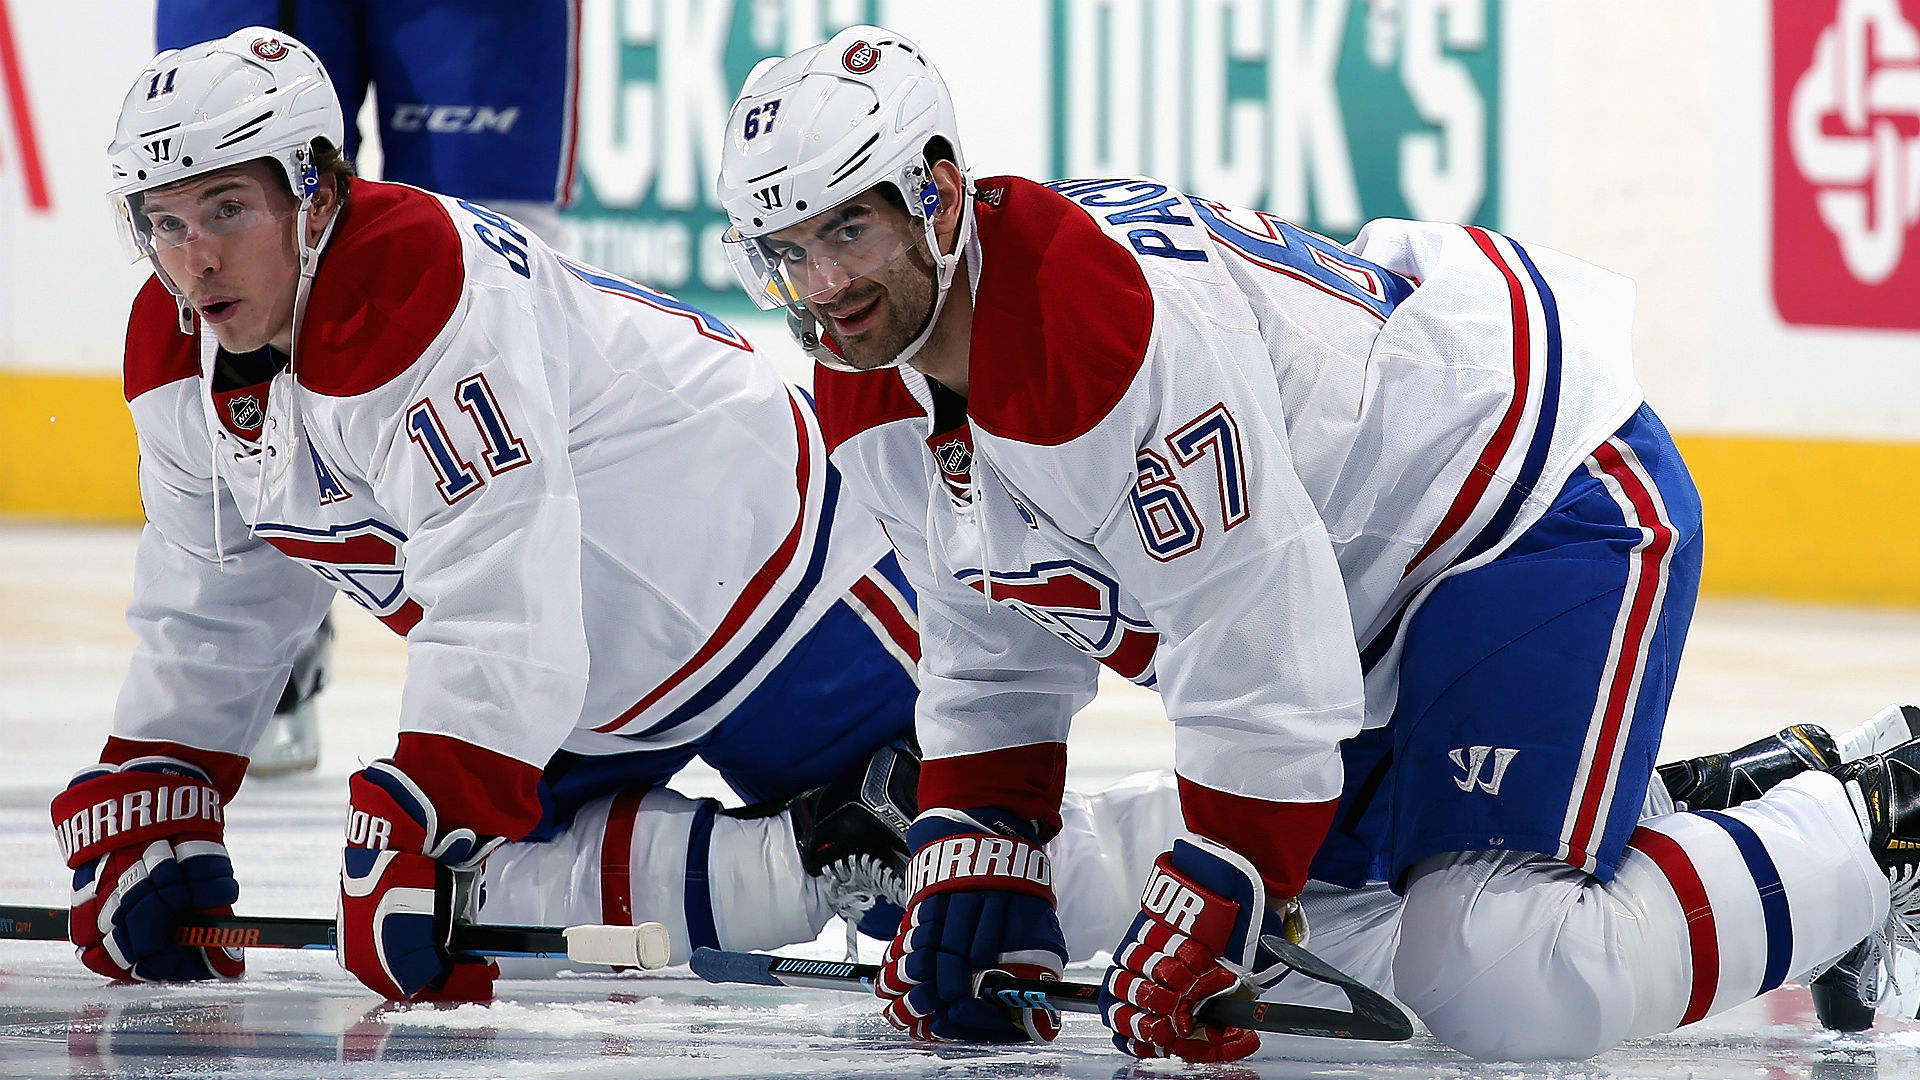 Canadiens home underdogs facing the Bruins on Saturday night